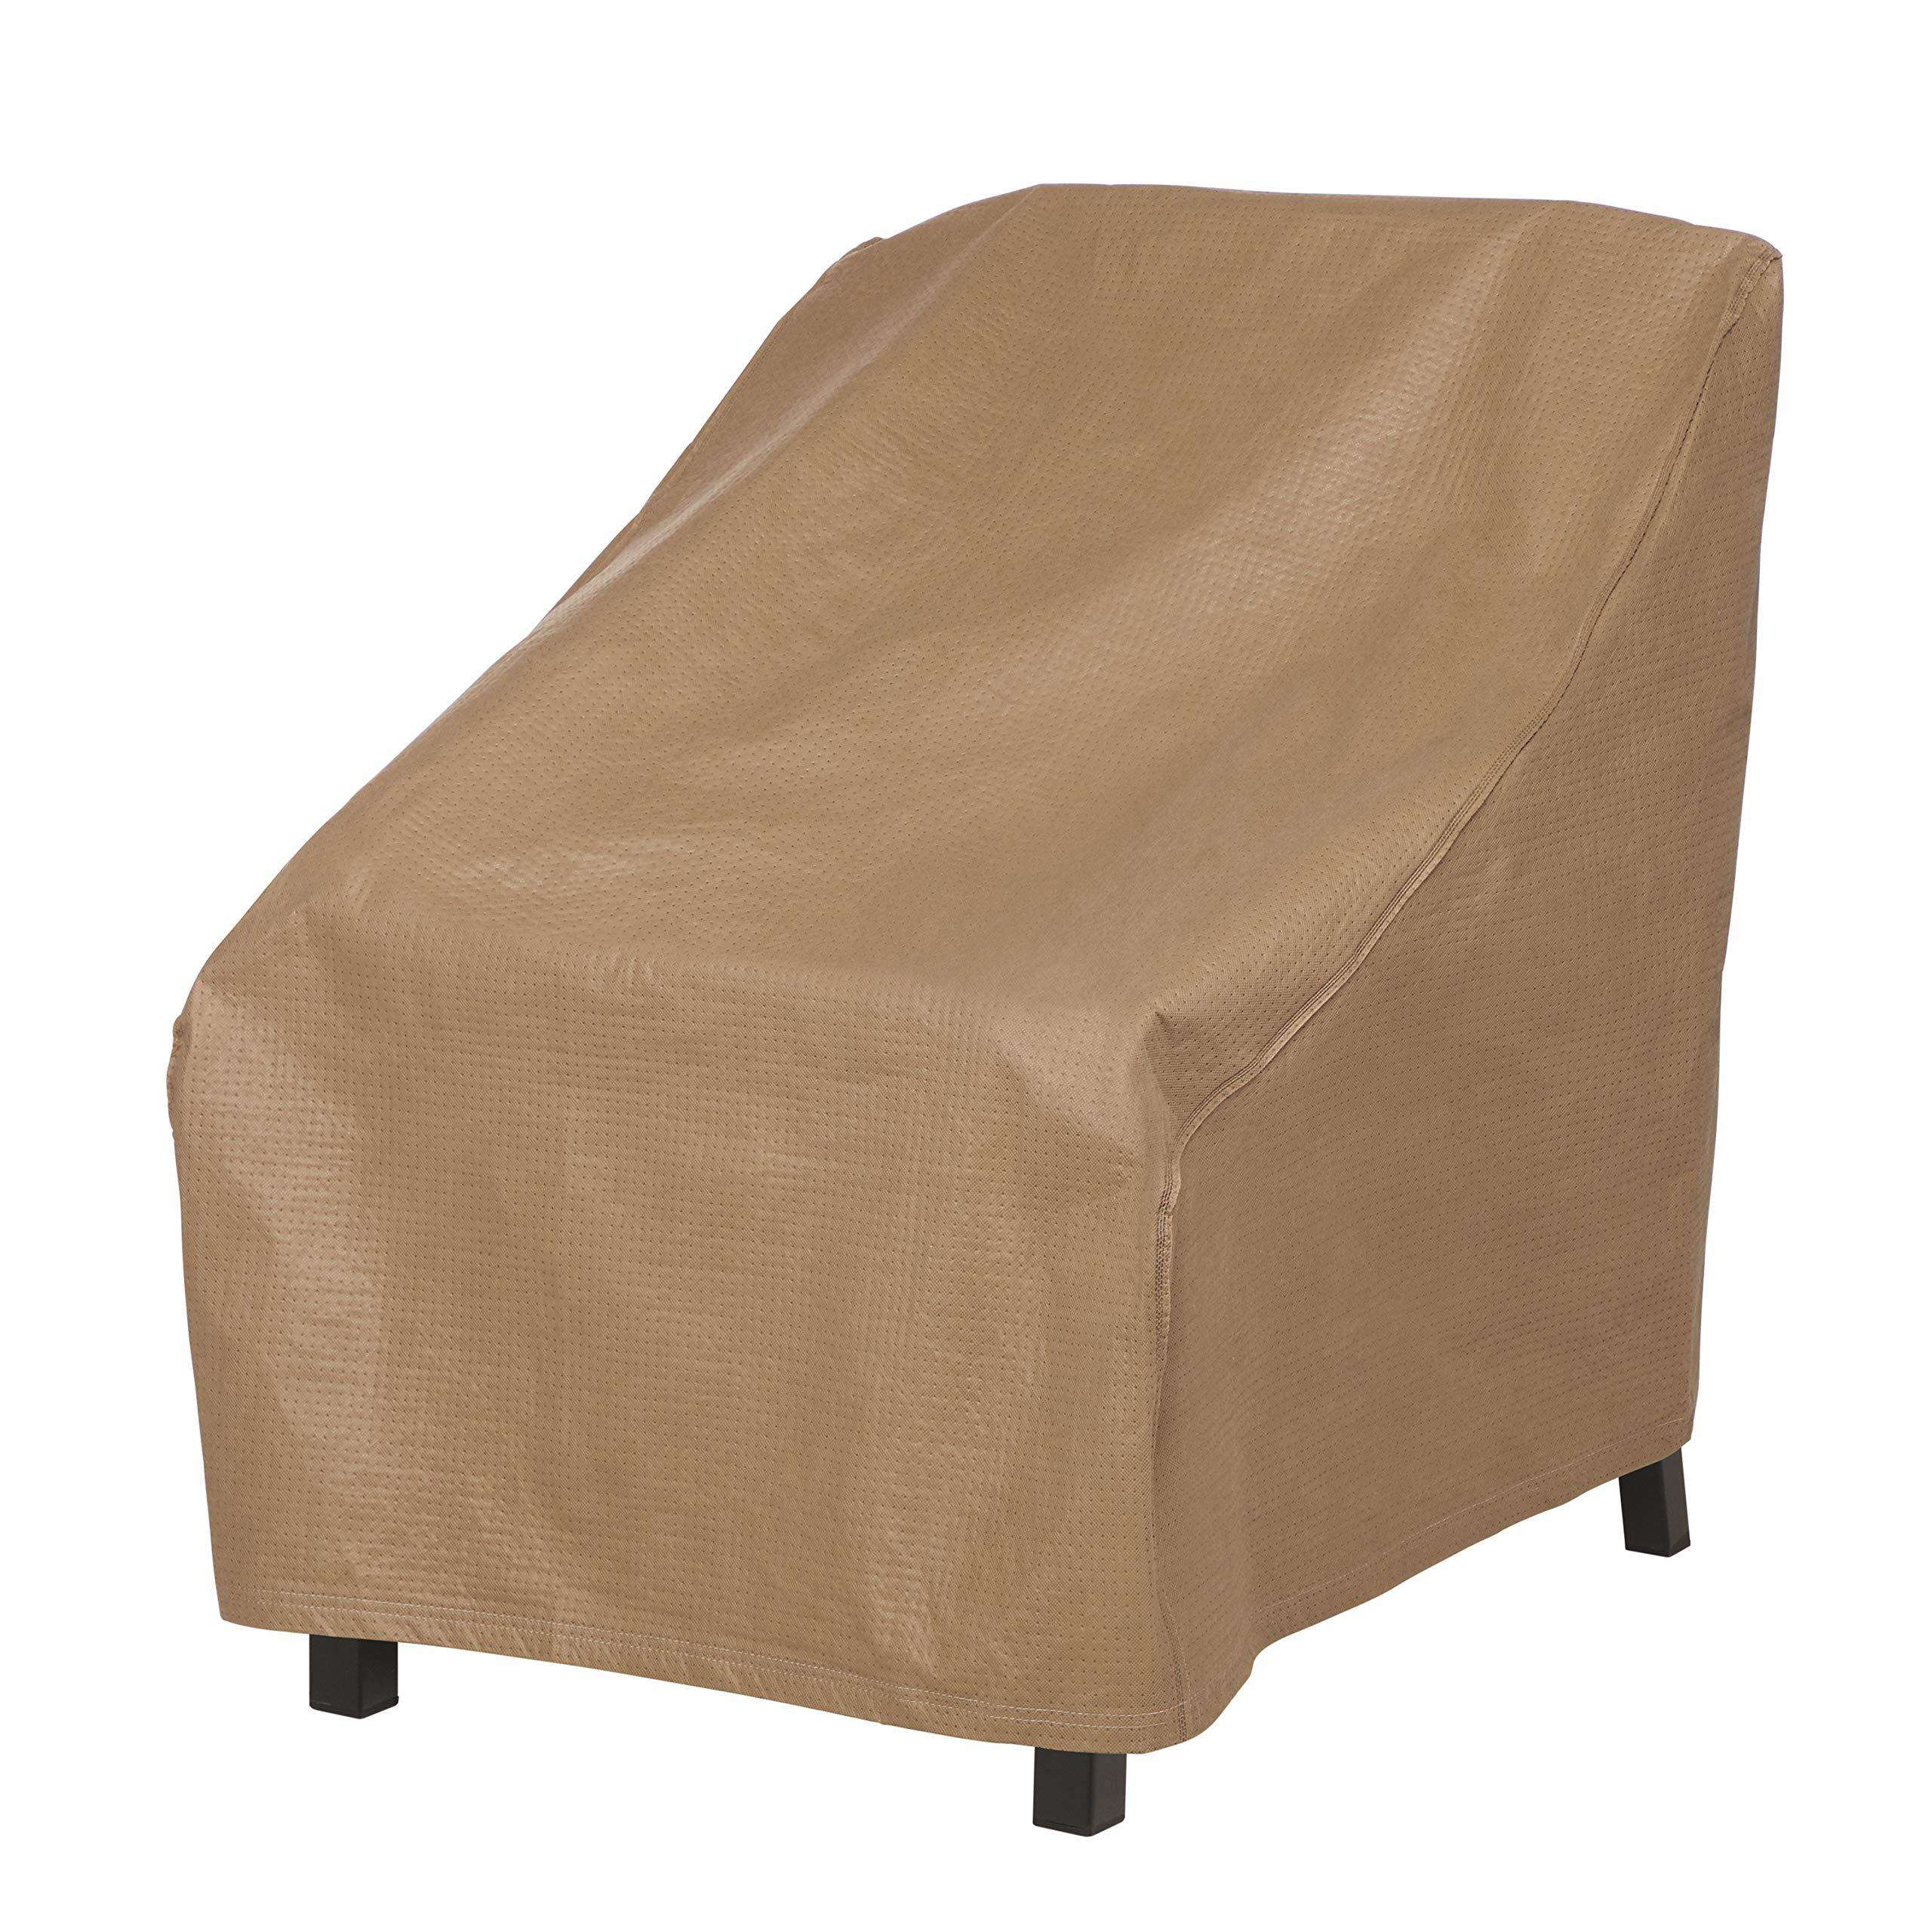 Duck Covers Essential Patio Chair Cover, 32